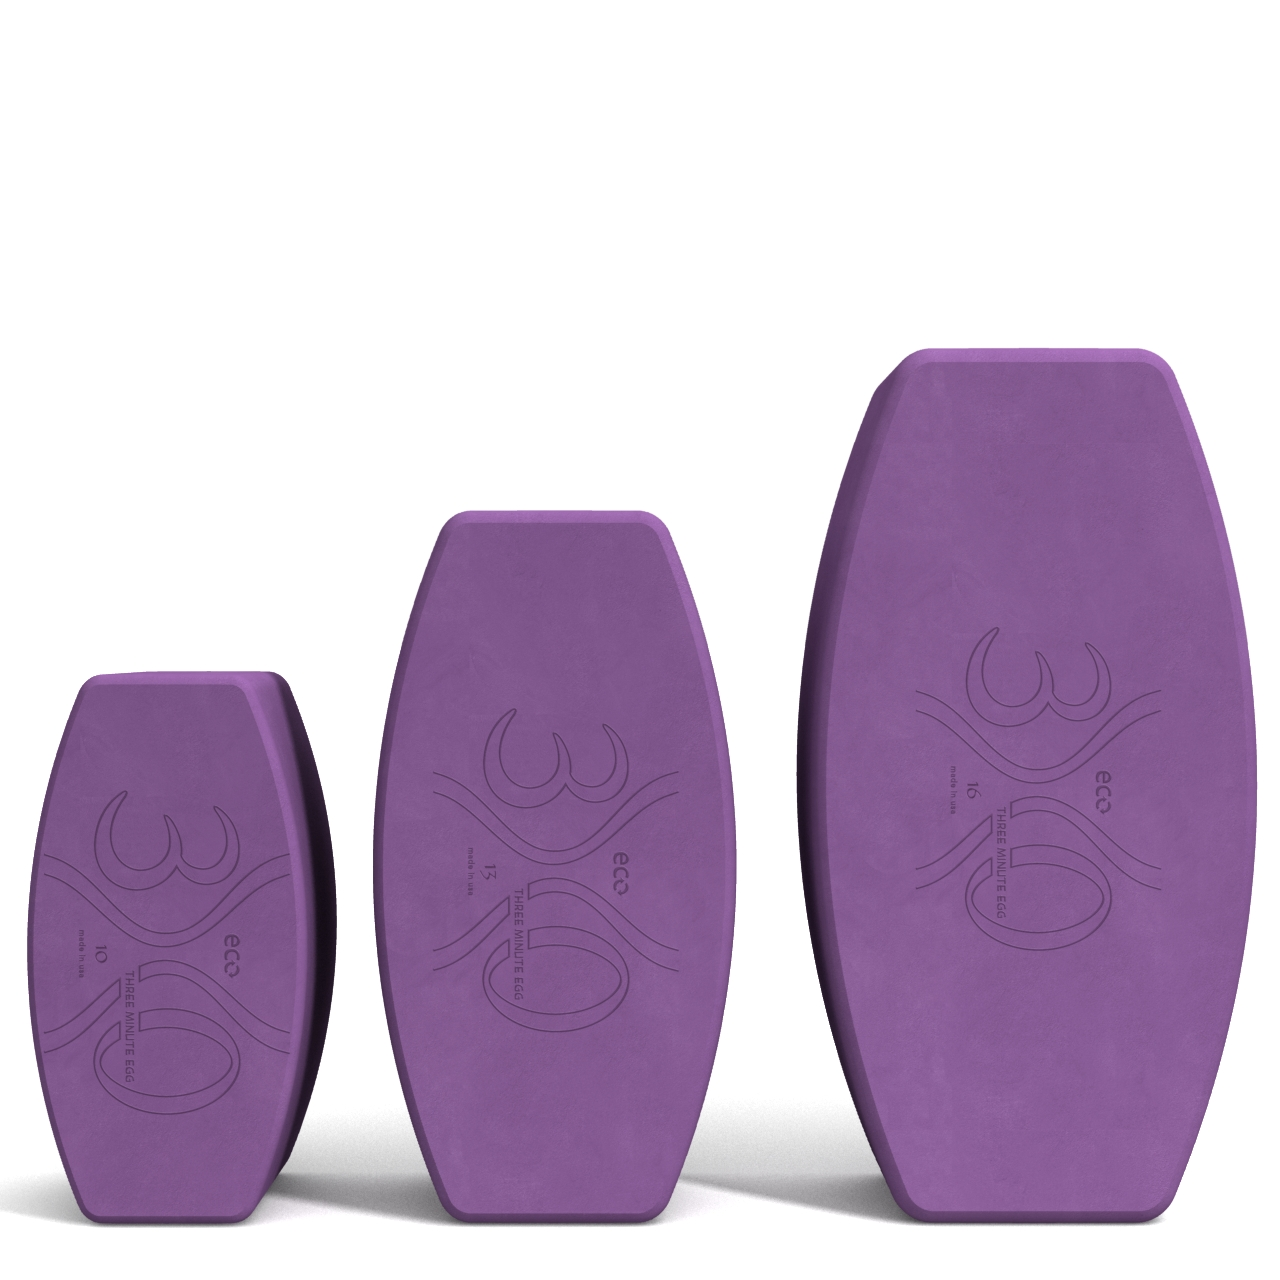 nyob-3-piece-combo-pack-purple.jpg